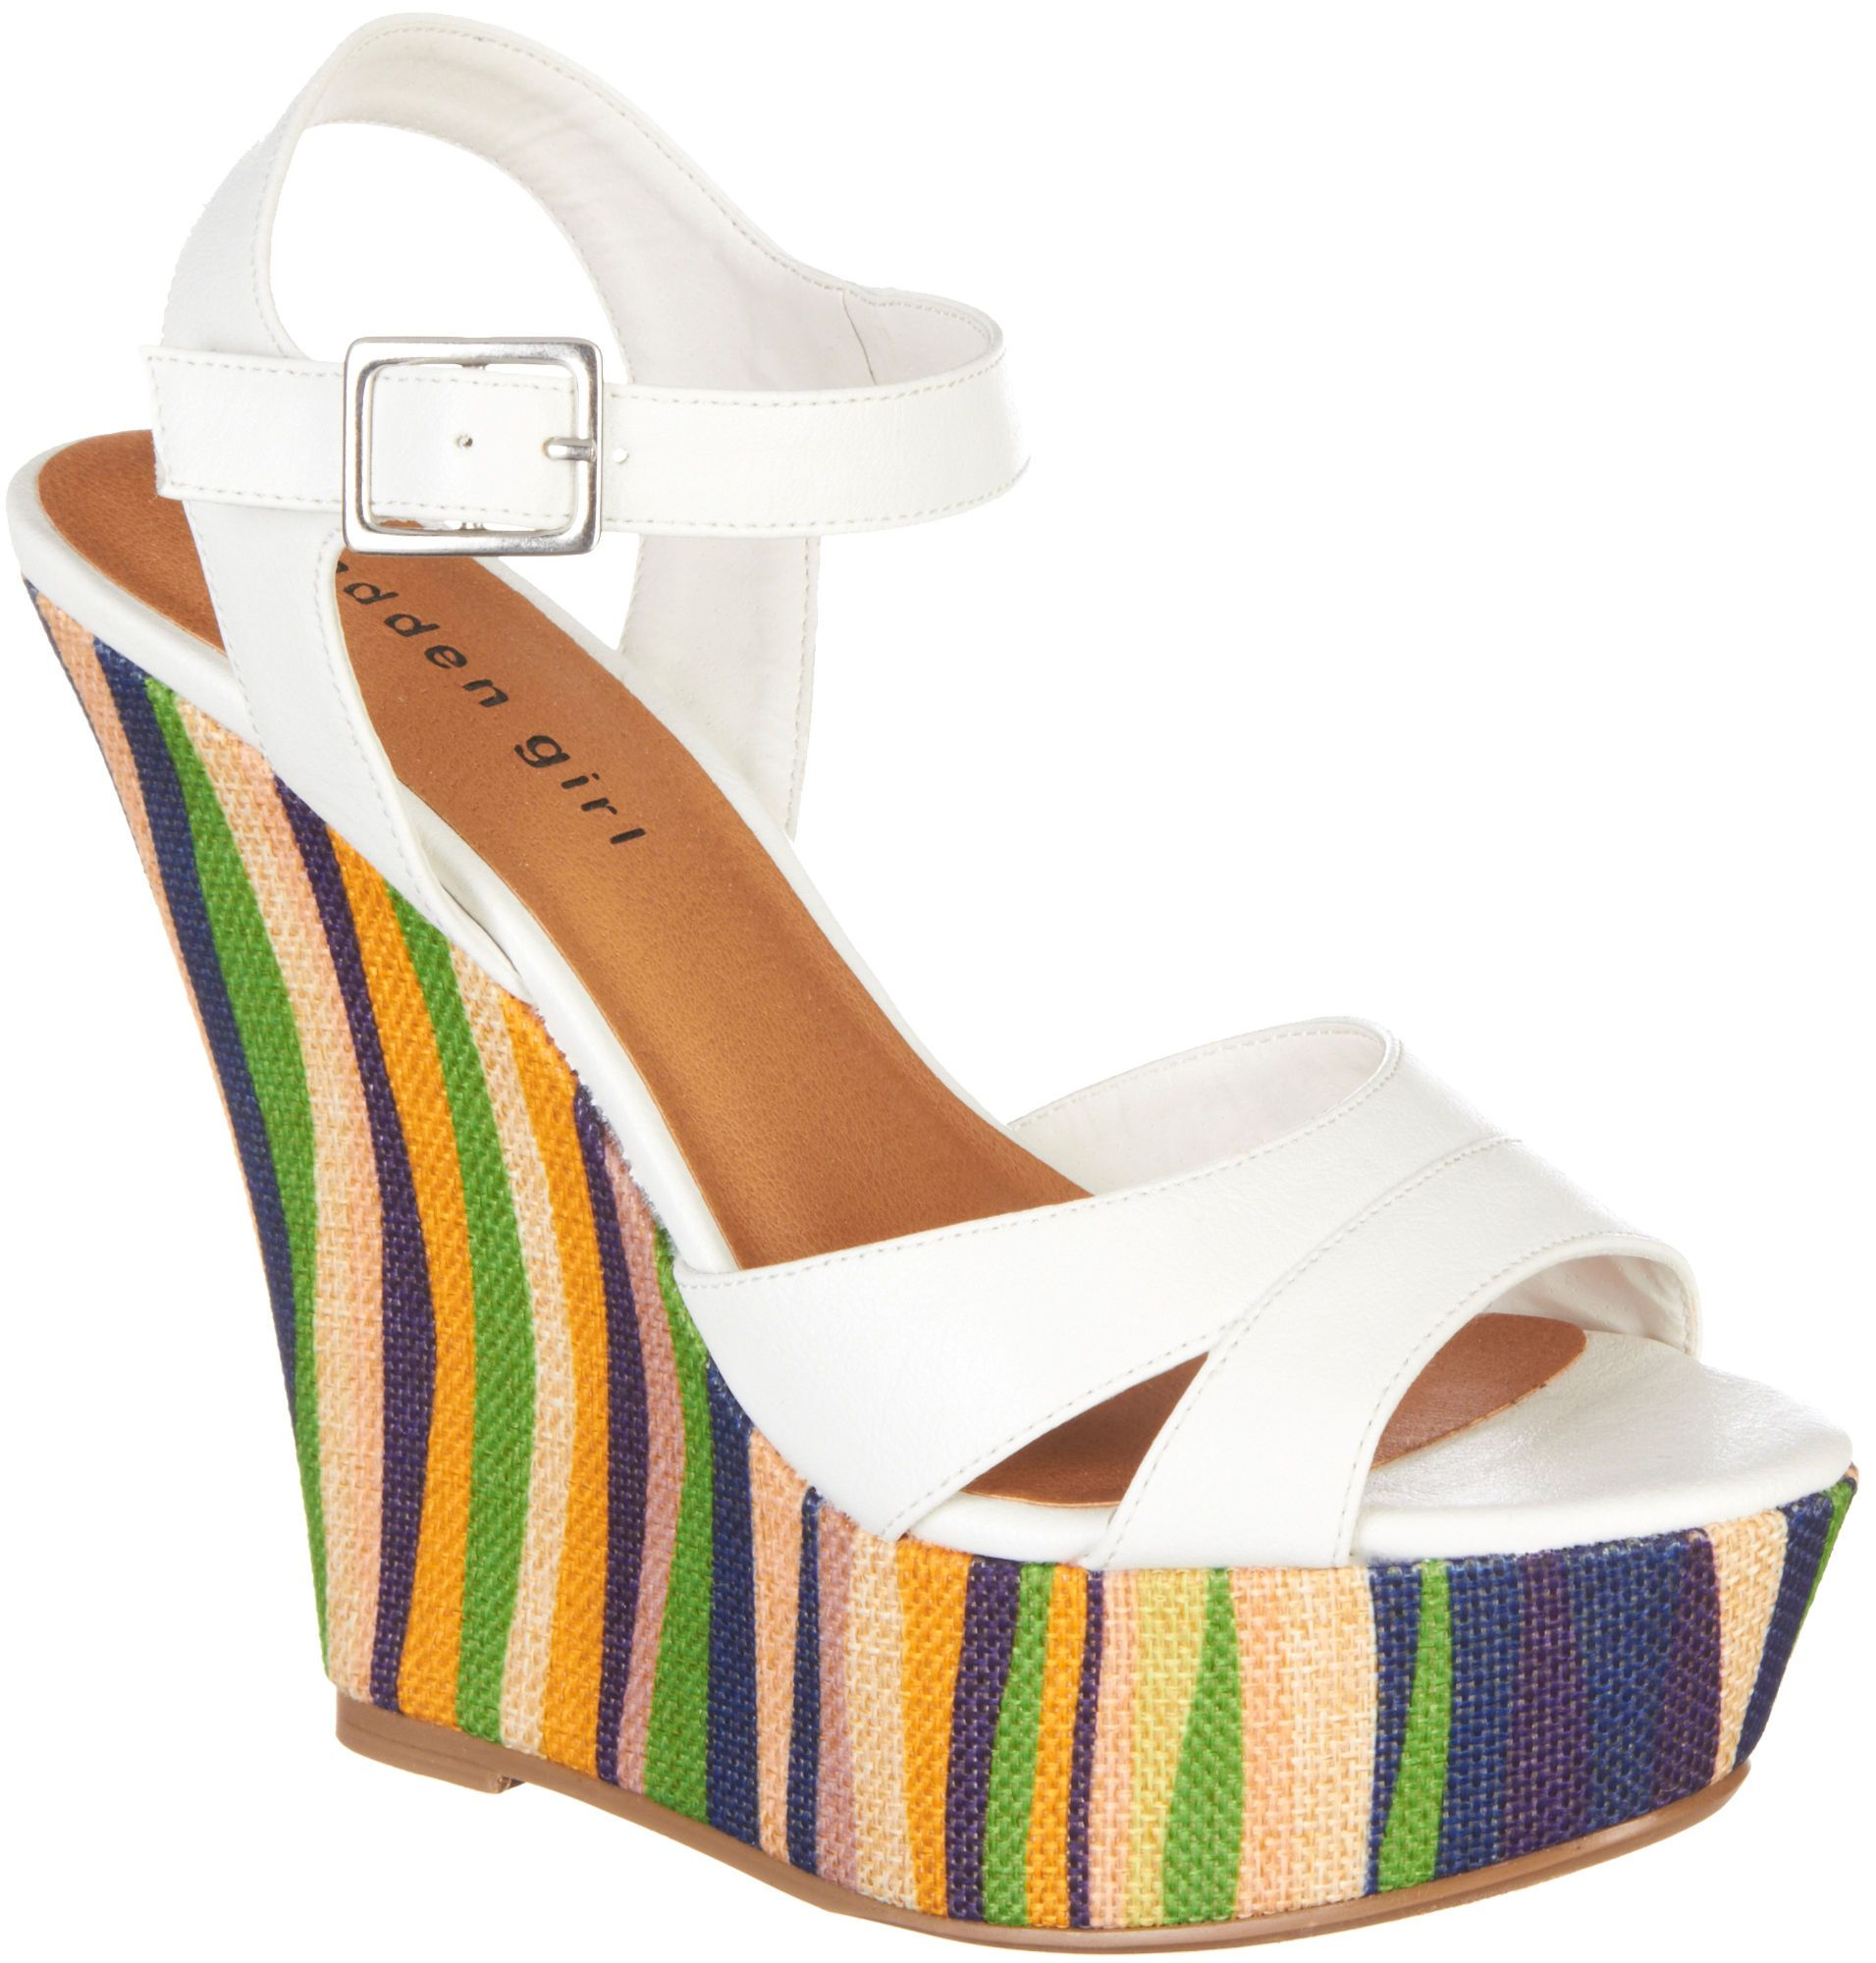 Must Have For Summer Madden Girl Stacked Heel Wedges On 1 1 2 Platform Musthave Buy Shoes Wedges Wedge Heels